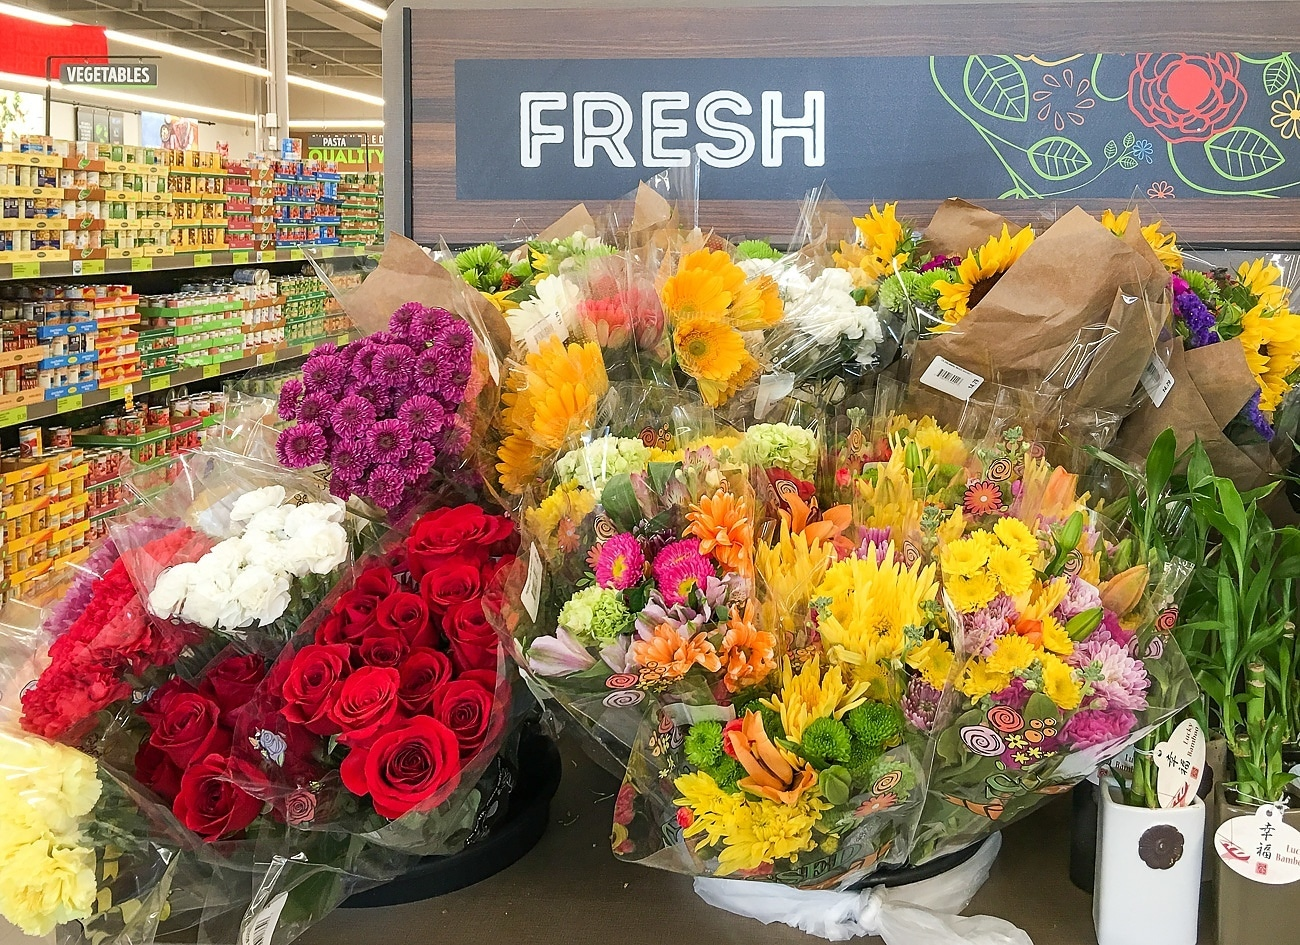 Fresh flowers at Aldi in Vista